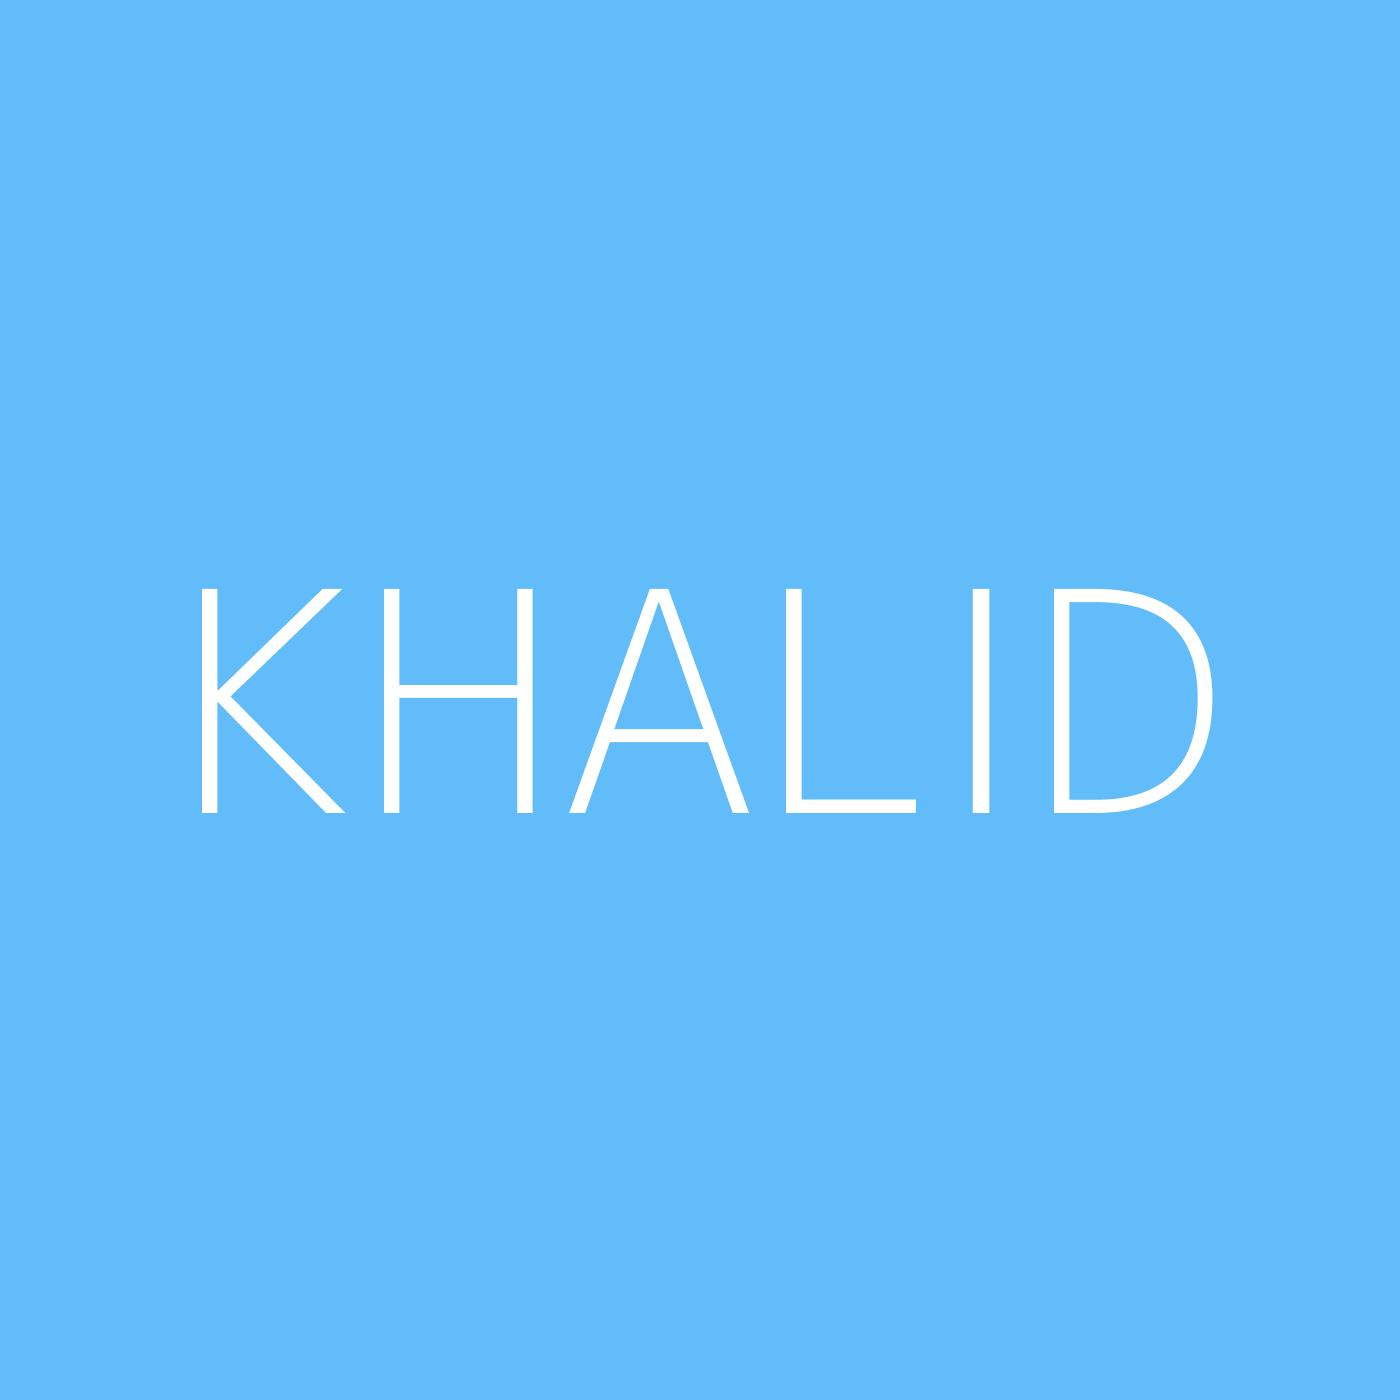 Khalid Playlist Artwork